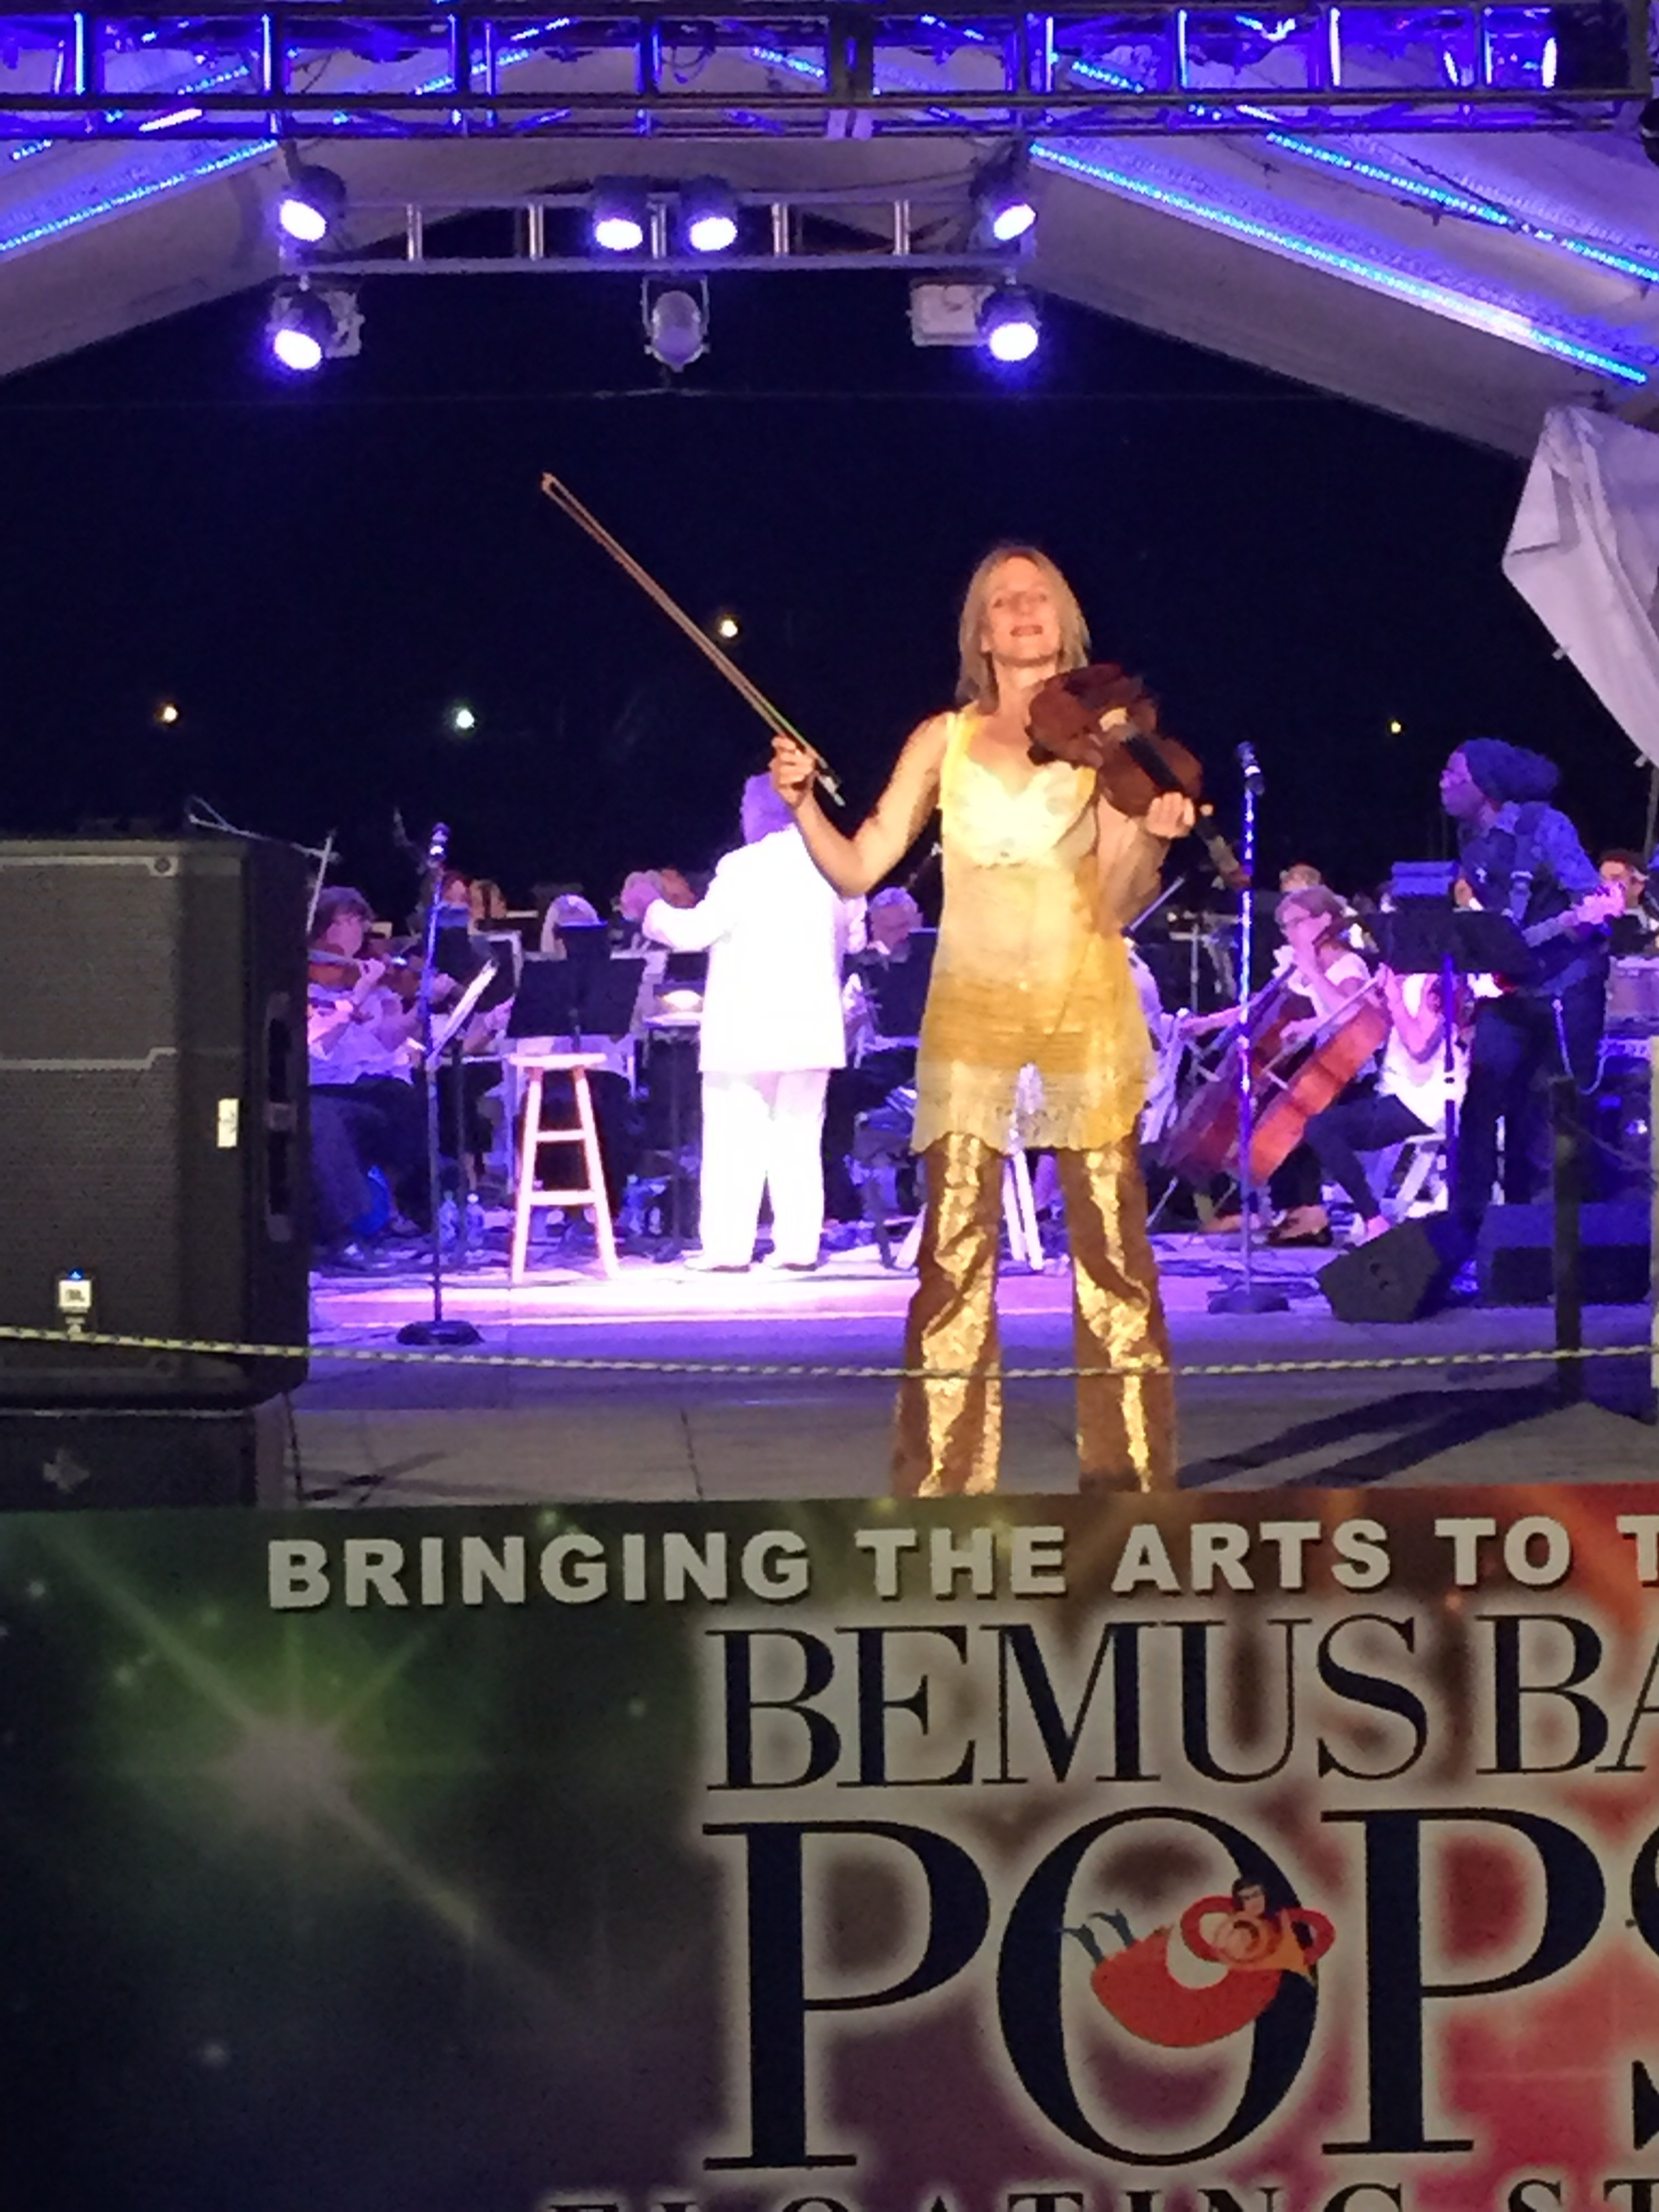 Wonderful Bemus Bay Pops orchestra conducted by John R. Marcellus